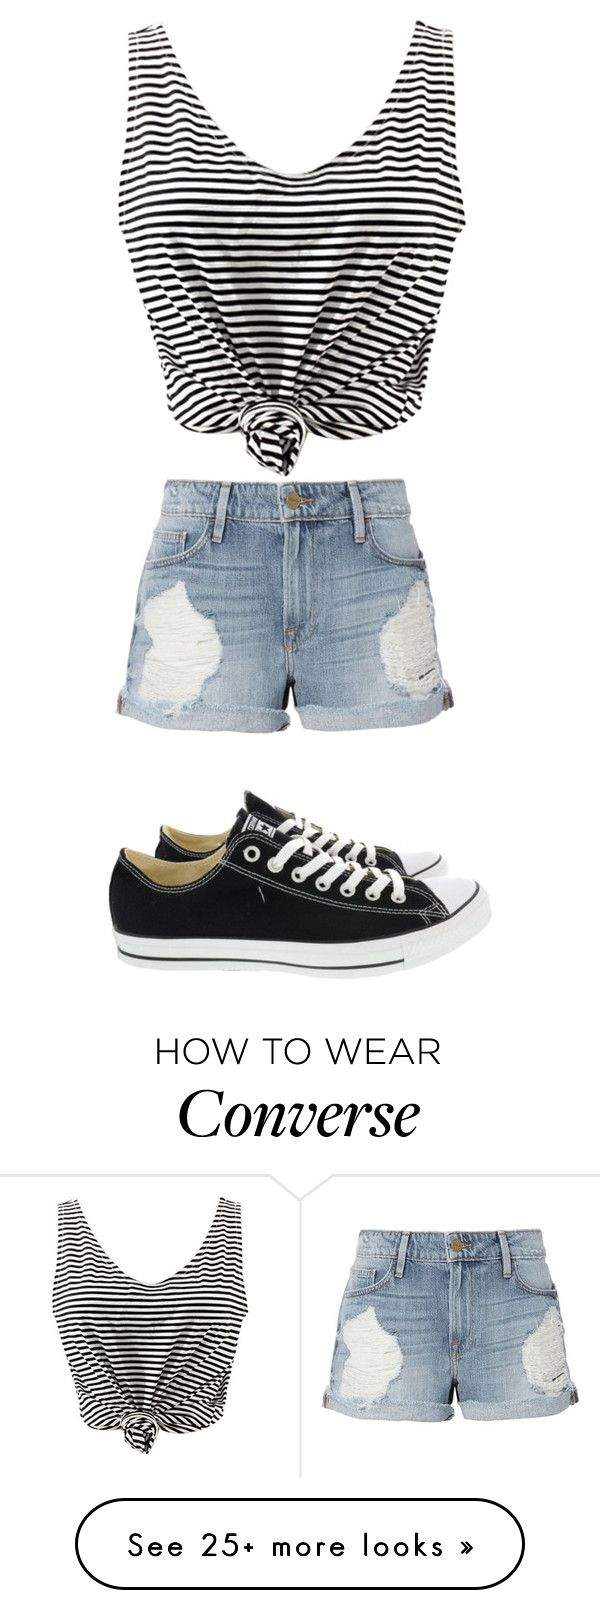 """Без названия #724"" by gazieva-dinara on Polyvore featuring WithChic, Frame and Converse"